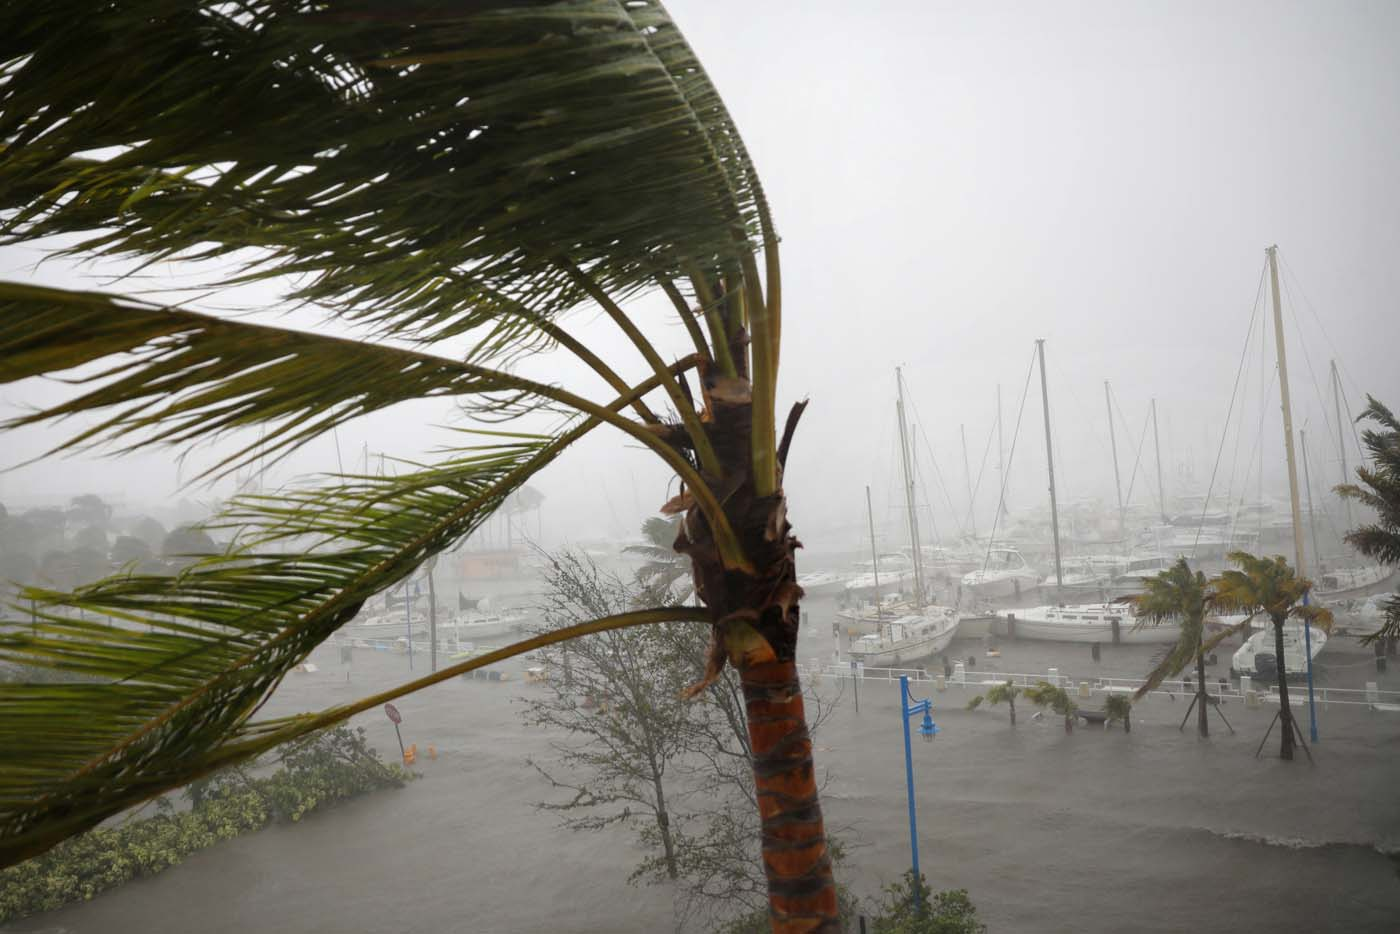 Boats are seen at a marina in Coconut Grove as Hurricane Irma arrives at south Florida, in Miami, Florida, U.S., September 10, 2017. REUTERS/Carlos Barria